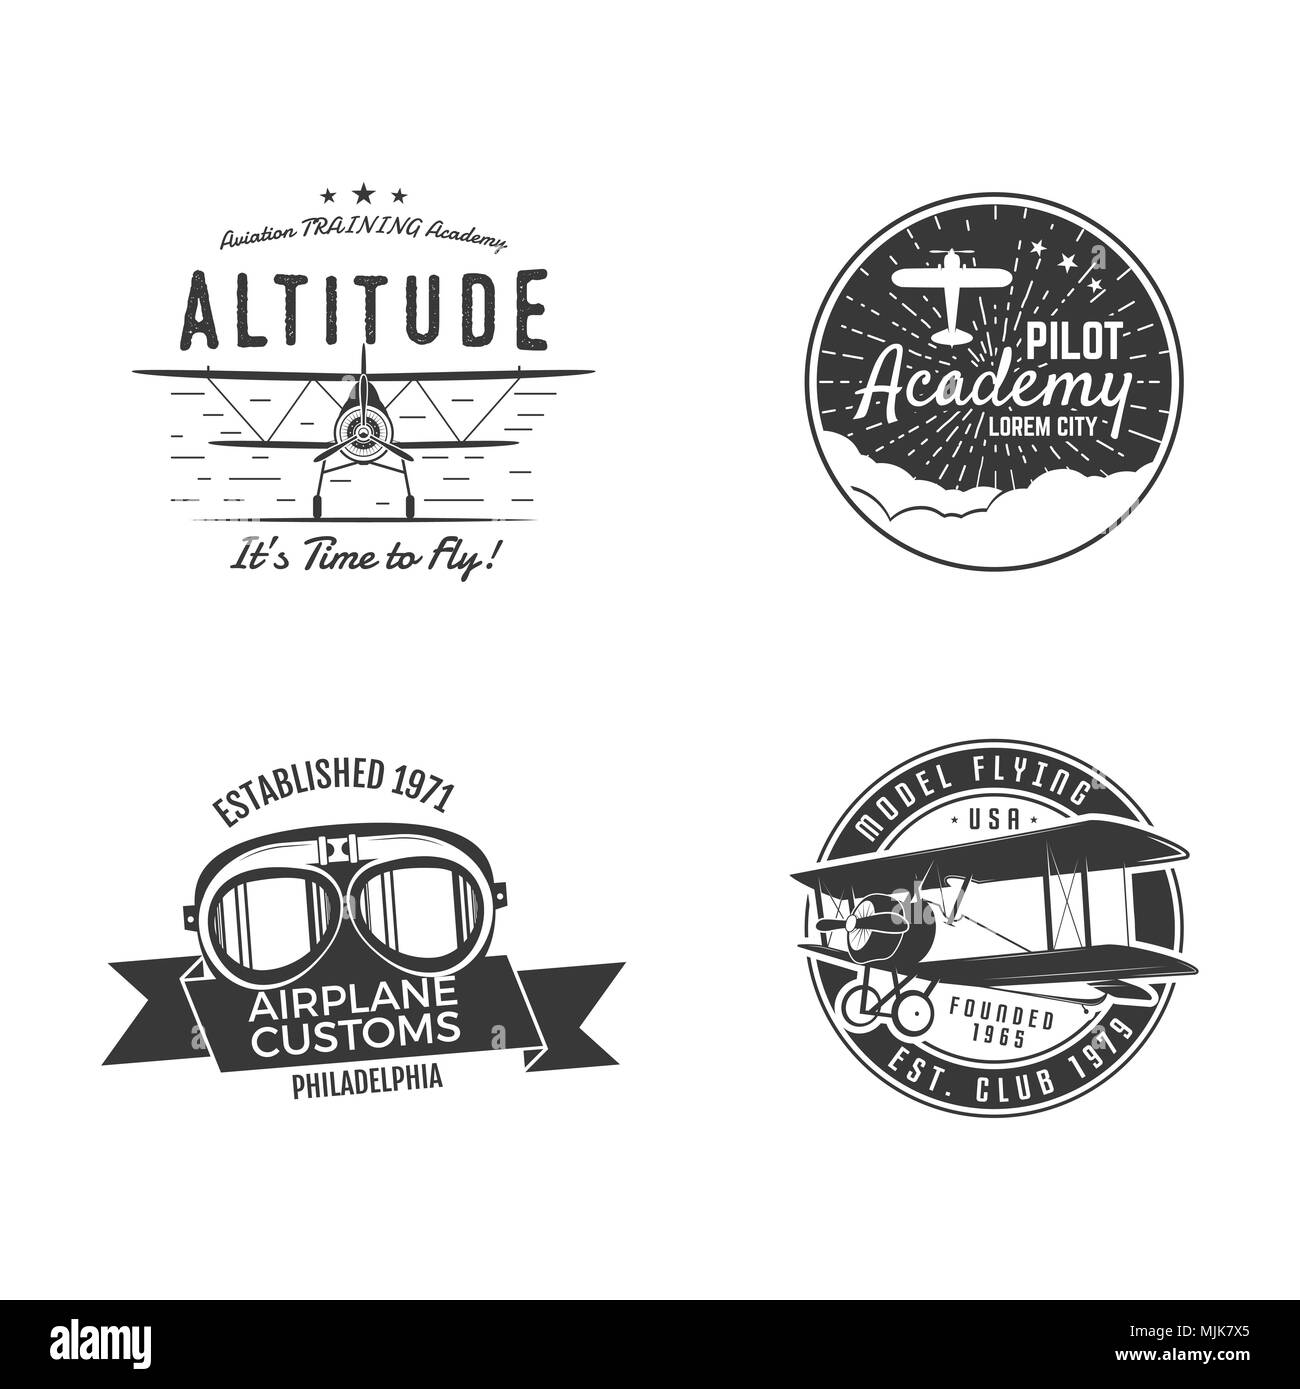 Vintage hand drawn old fly stamps. Travel or business airplane tour emblems. Airplane logo designs. Retro aerial badge. Pilot school logos. Plane tee design, prints. Stock stamps isolated - Stock Image